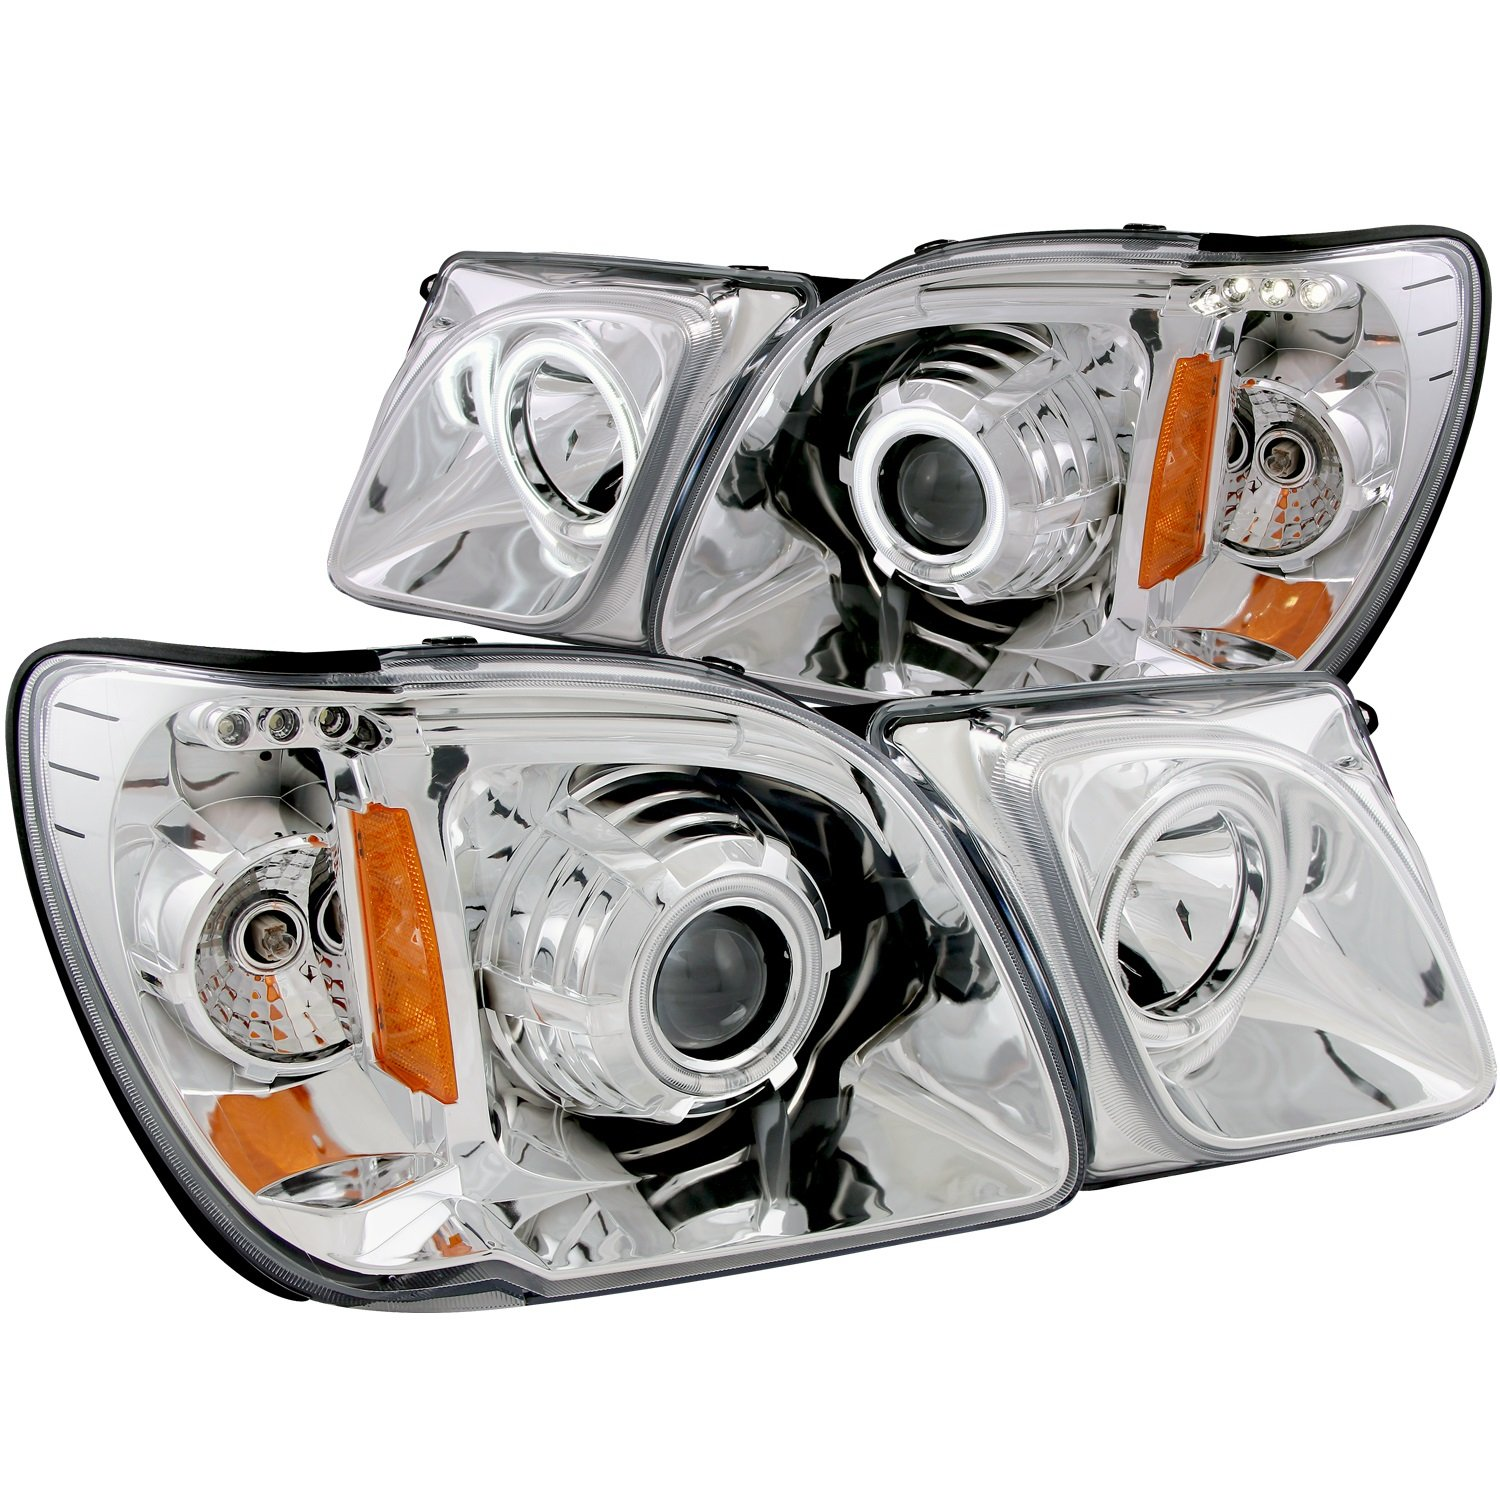 Amazon.com: AnzoUSA 111169 Chrome Clear Projector Halo Headlight for Lexus  LX470 - (Sold in Pairs): Automotive